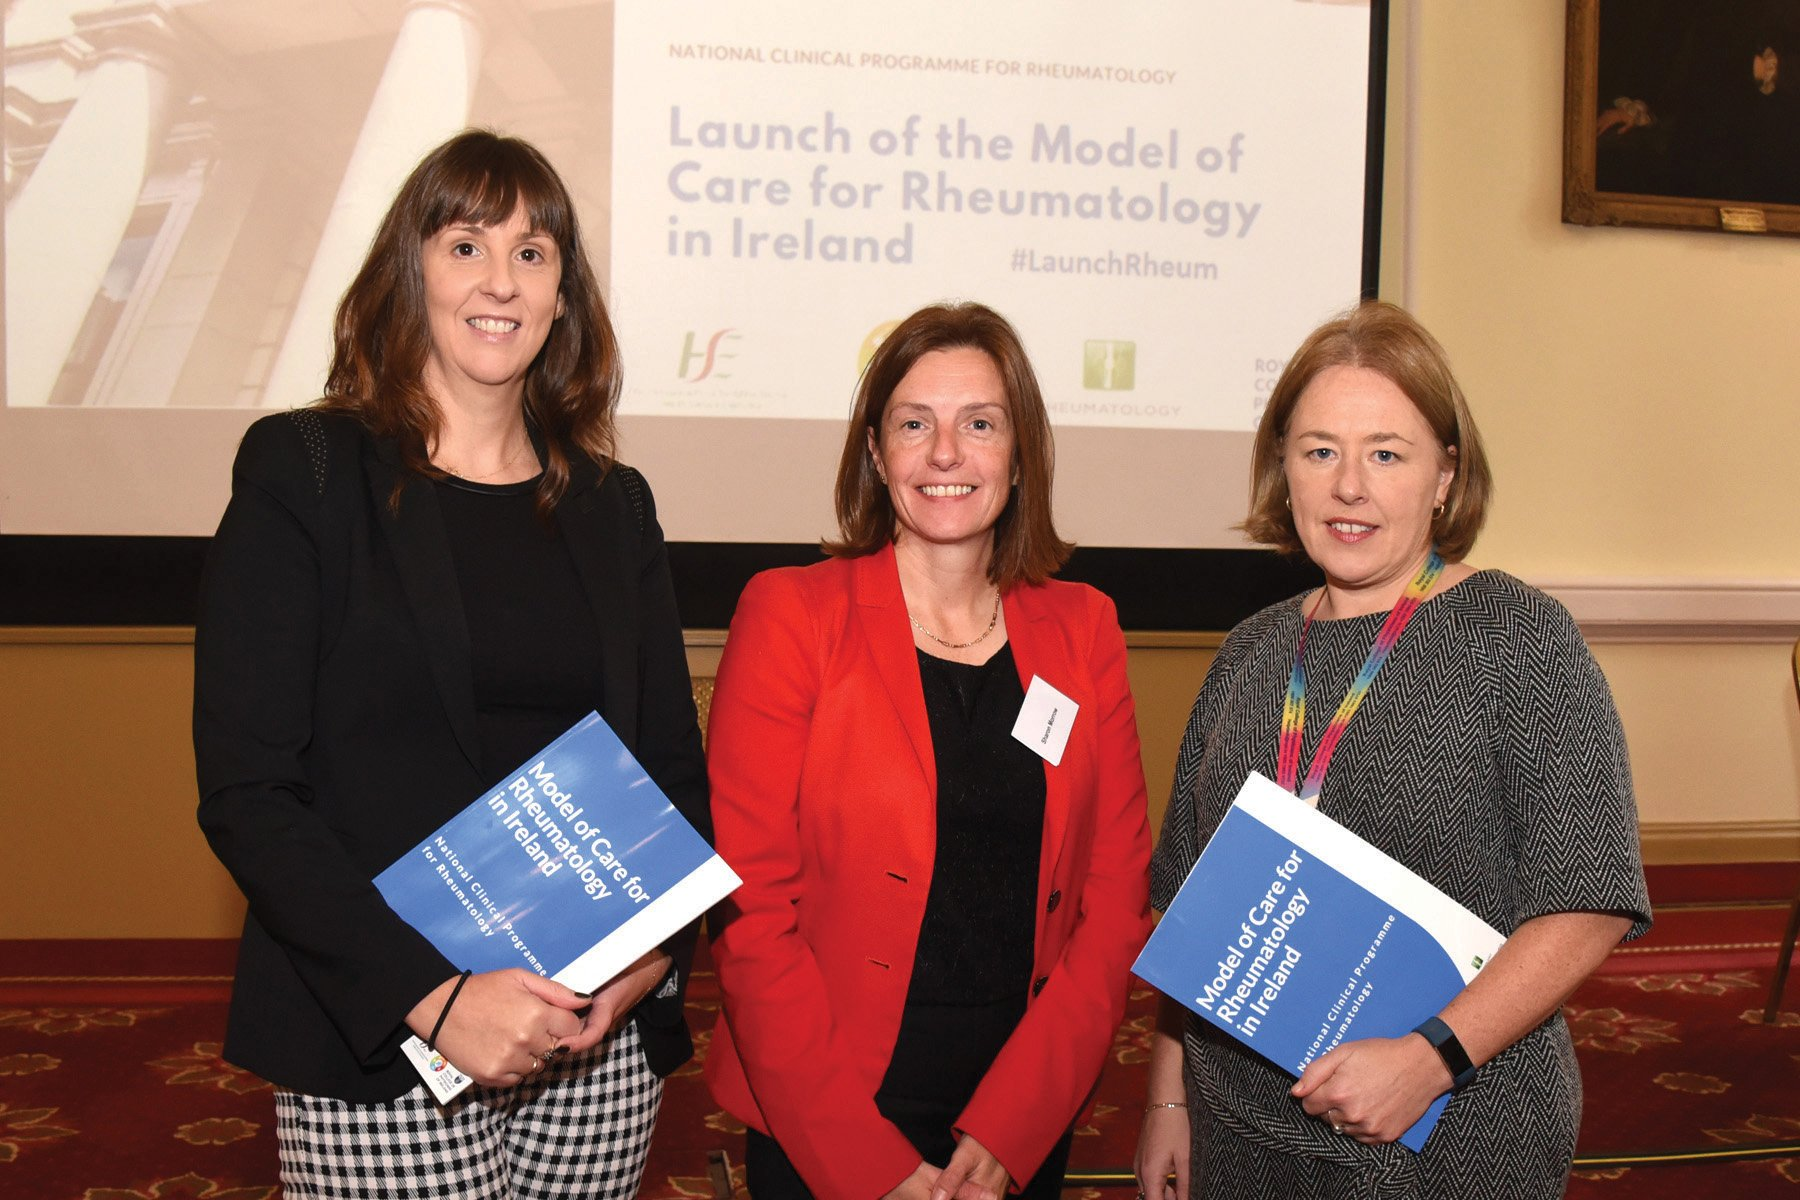 Model of Care for Rheumatology in Ireland launch